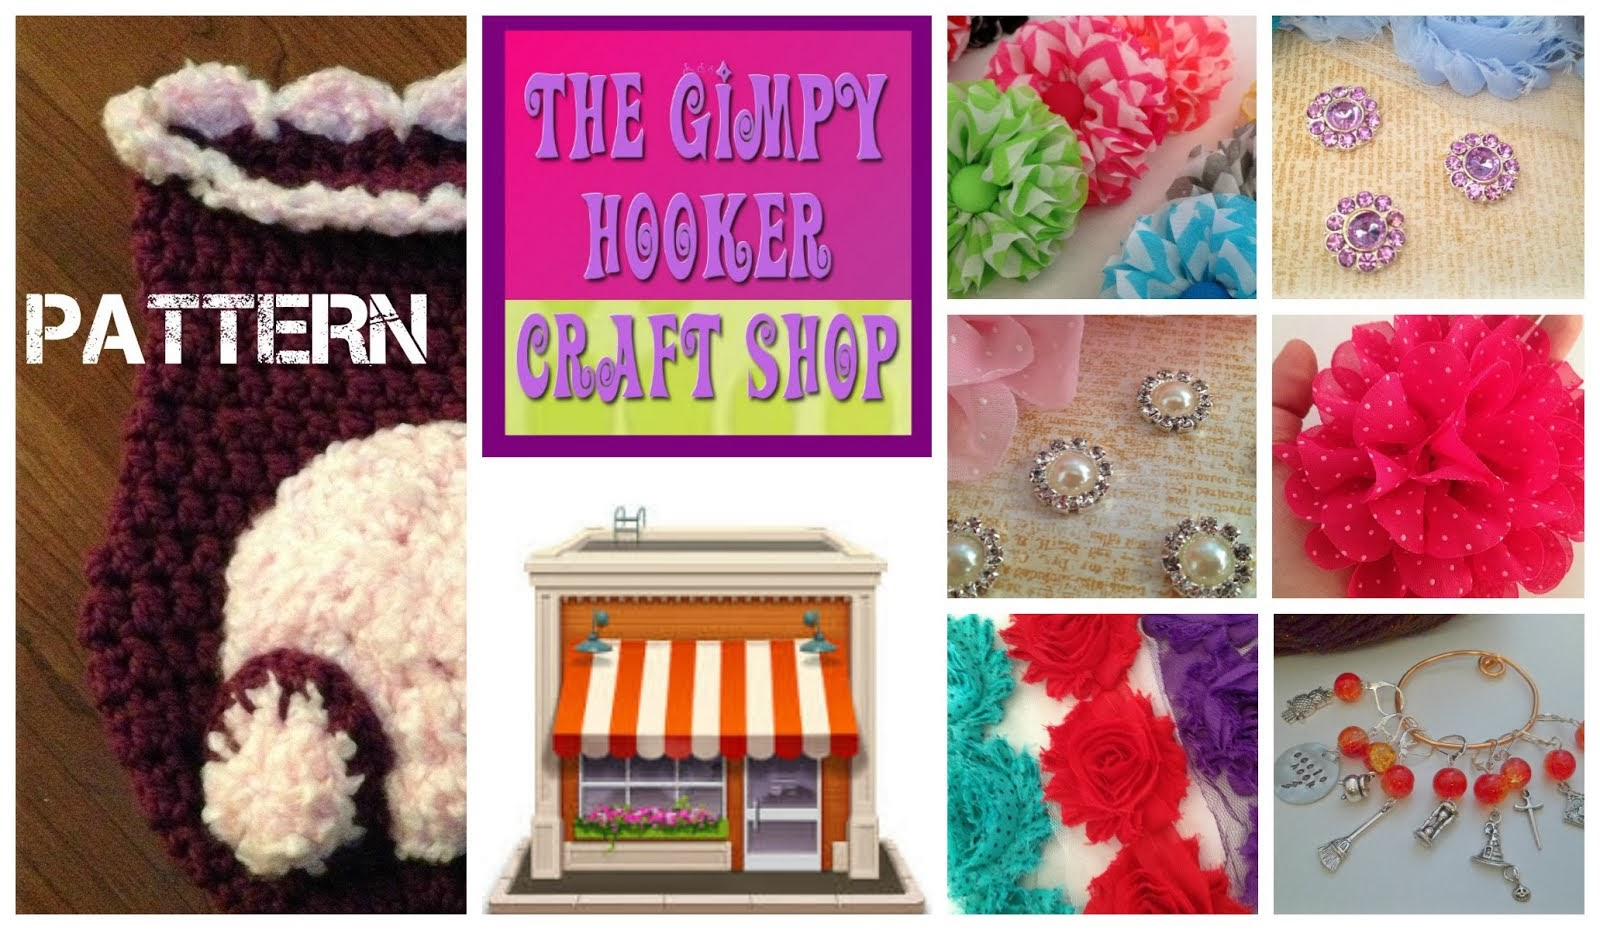 The Gimpy Hooker Supply Shop!